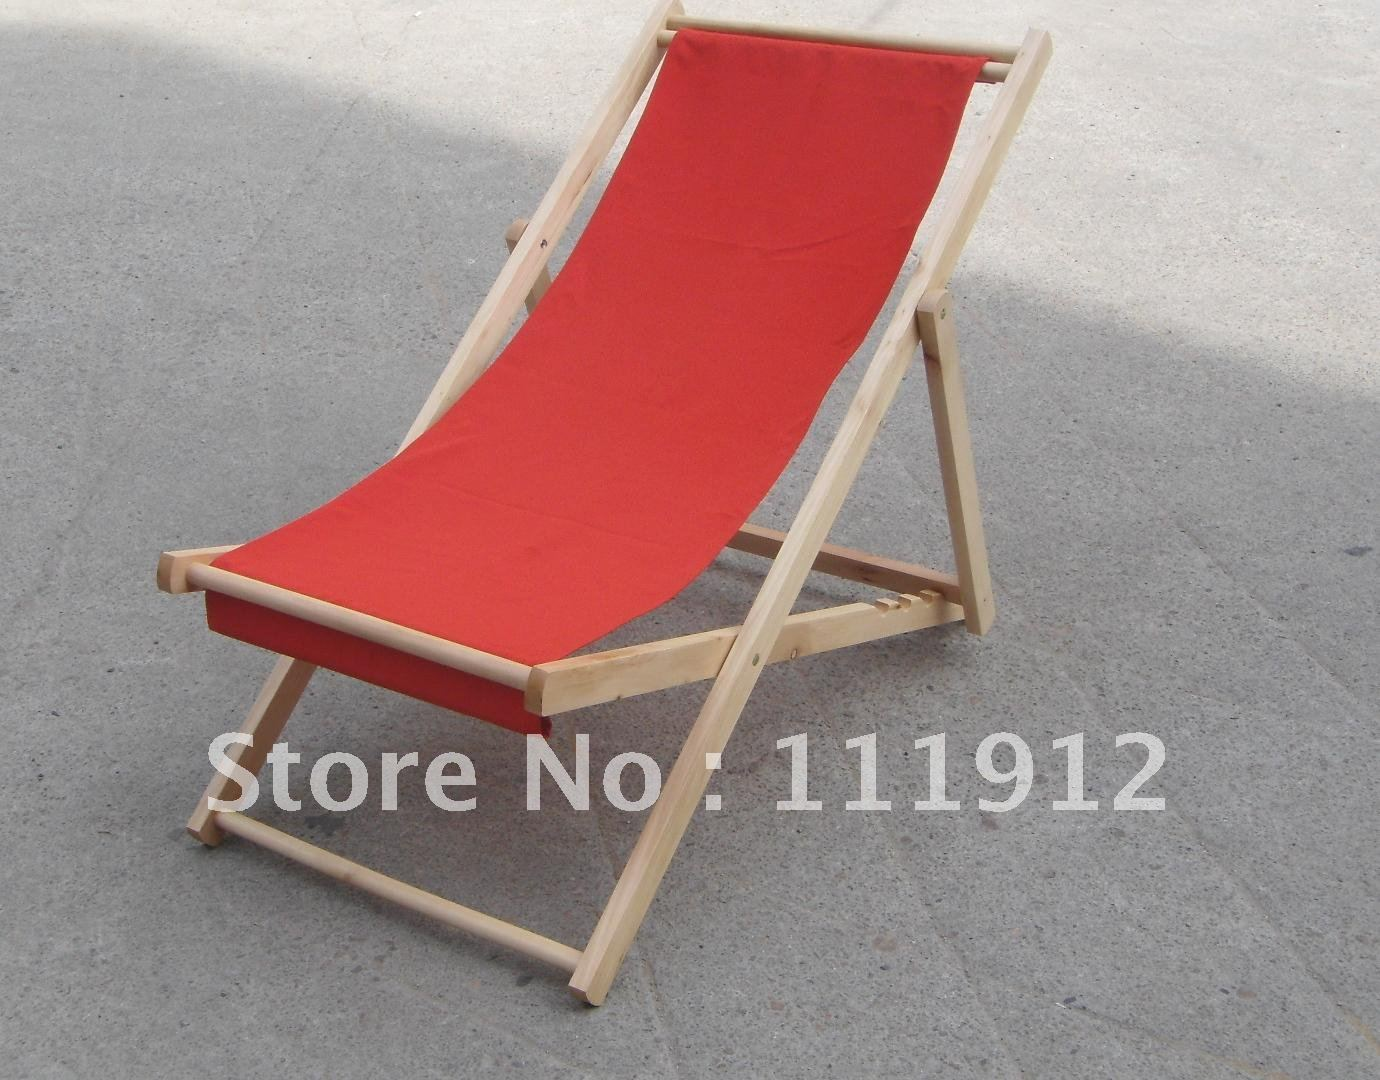 Folding Wood Beach Chair Us 29 9 Wood Folding Beach Chair Hardwood Leisure Chair In Beach Chairs From Furniture On Aliexpress Alibaba Group